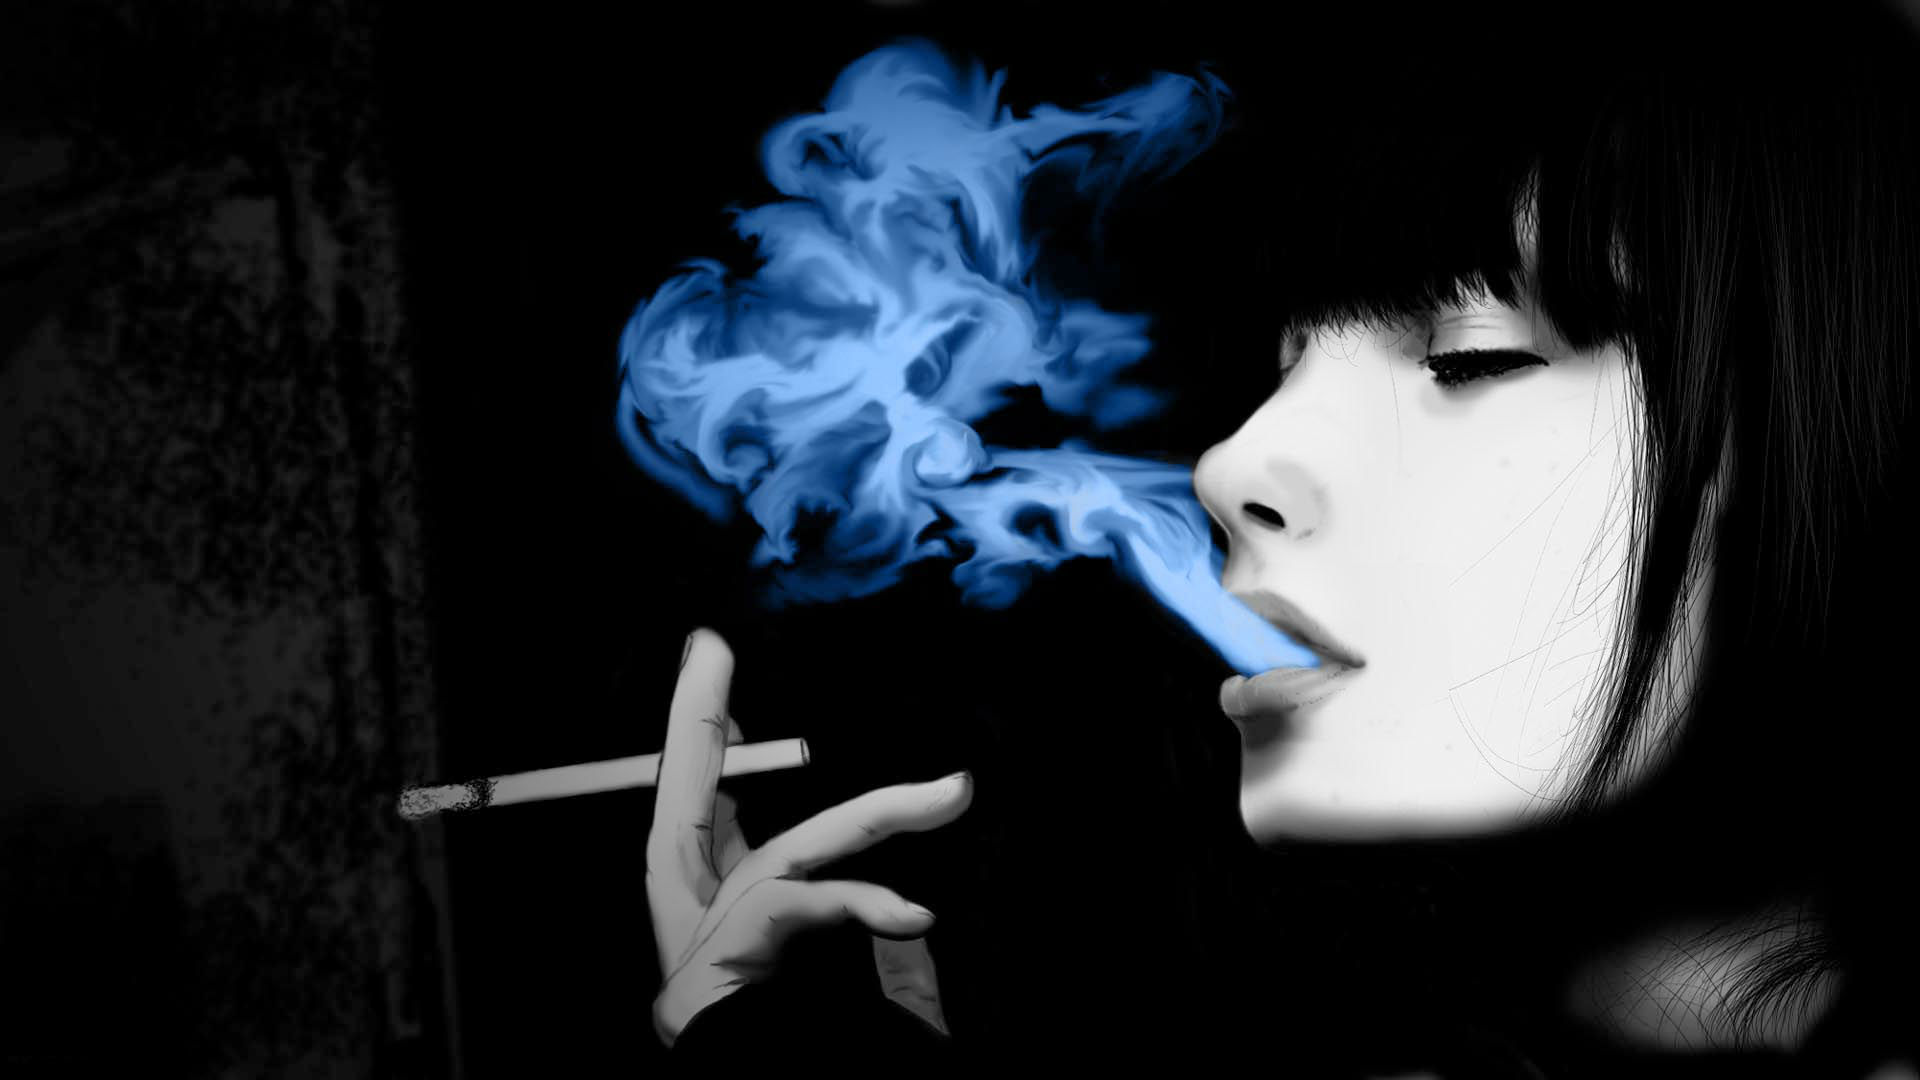 Girl Smoking Weed Wallpaper Iphone Women Full Hd Wallpaper And Background Image 1920x1080